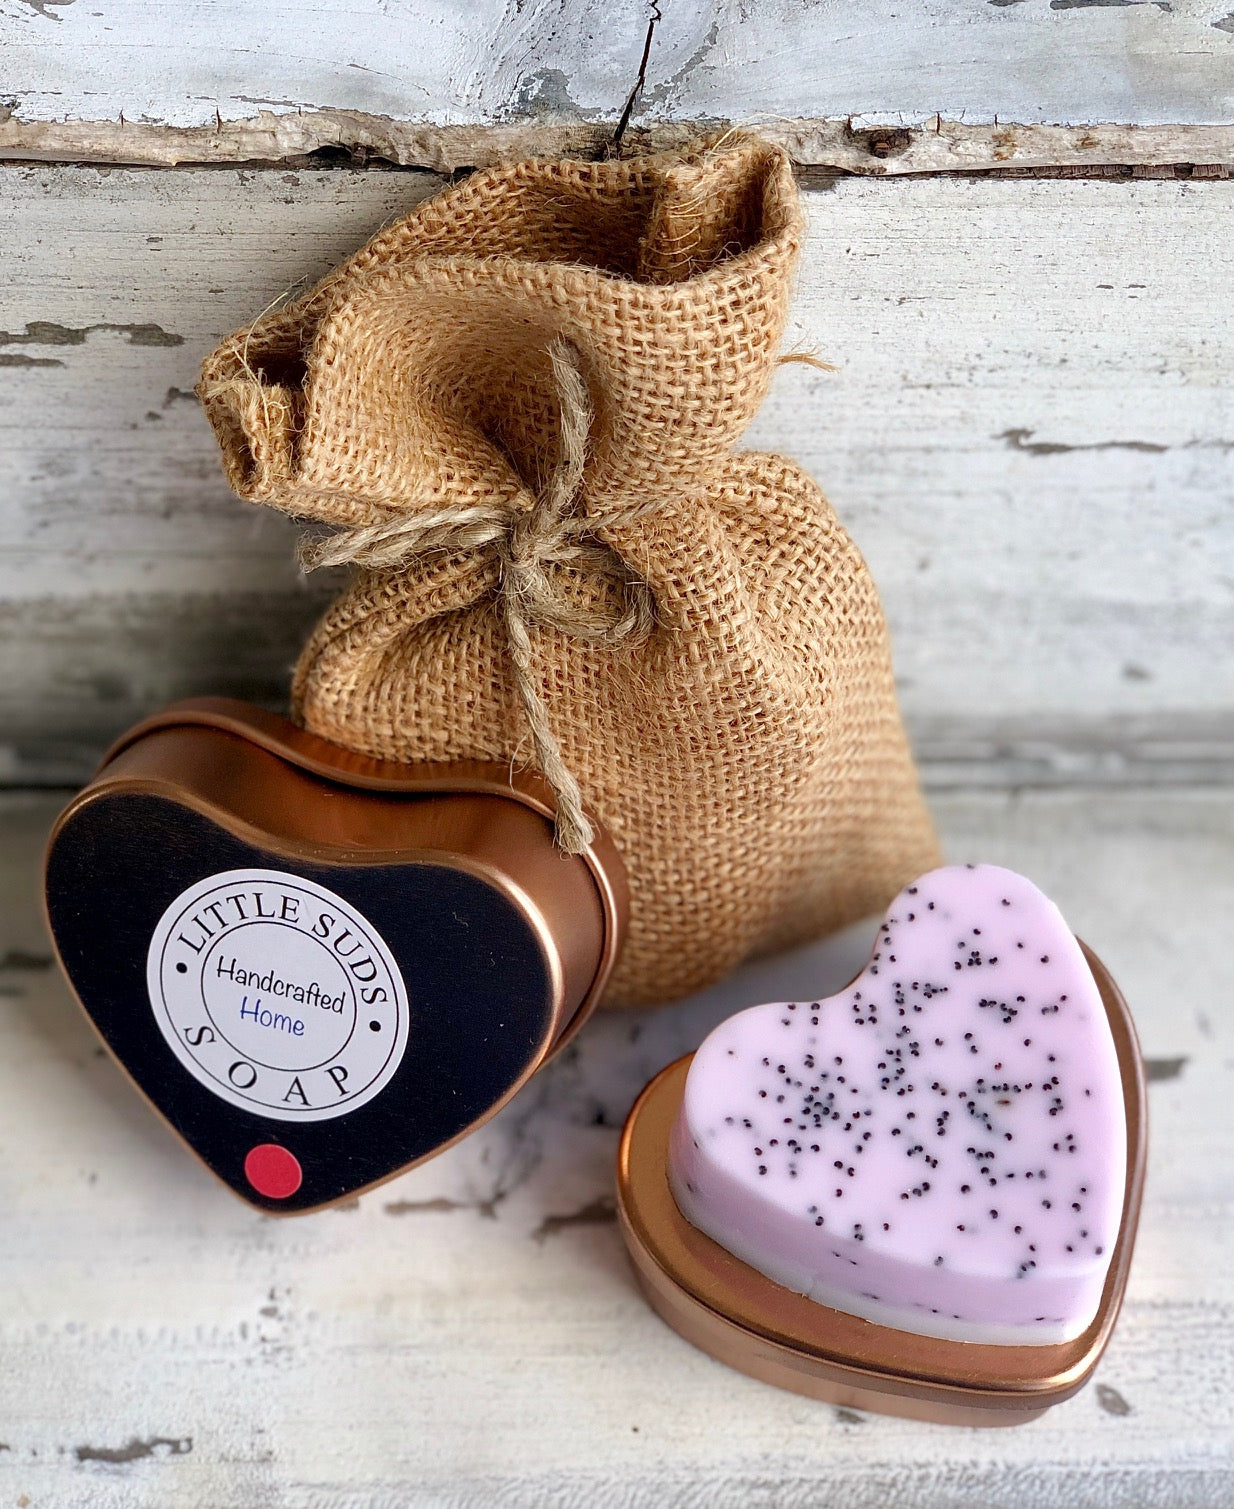 Heaven Scent Big Heart Soap